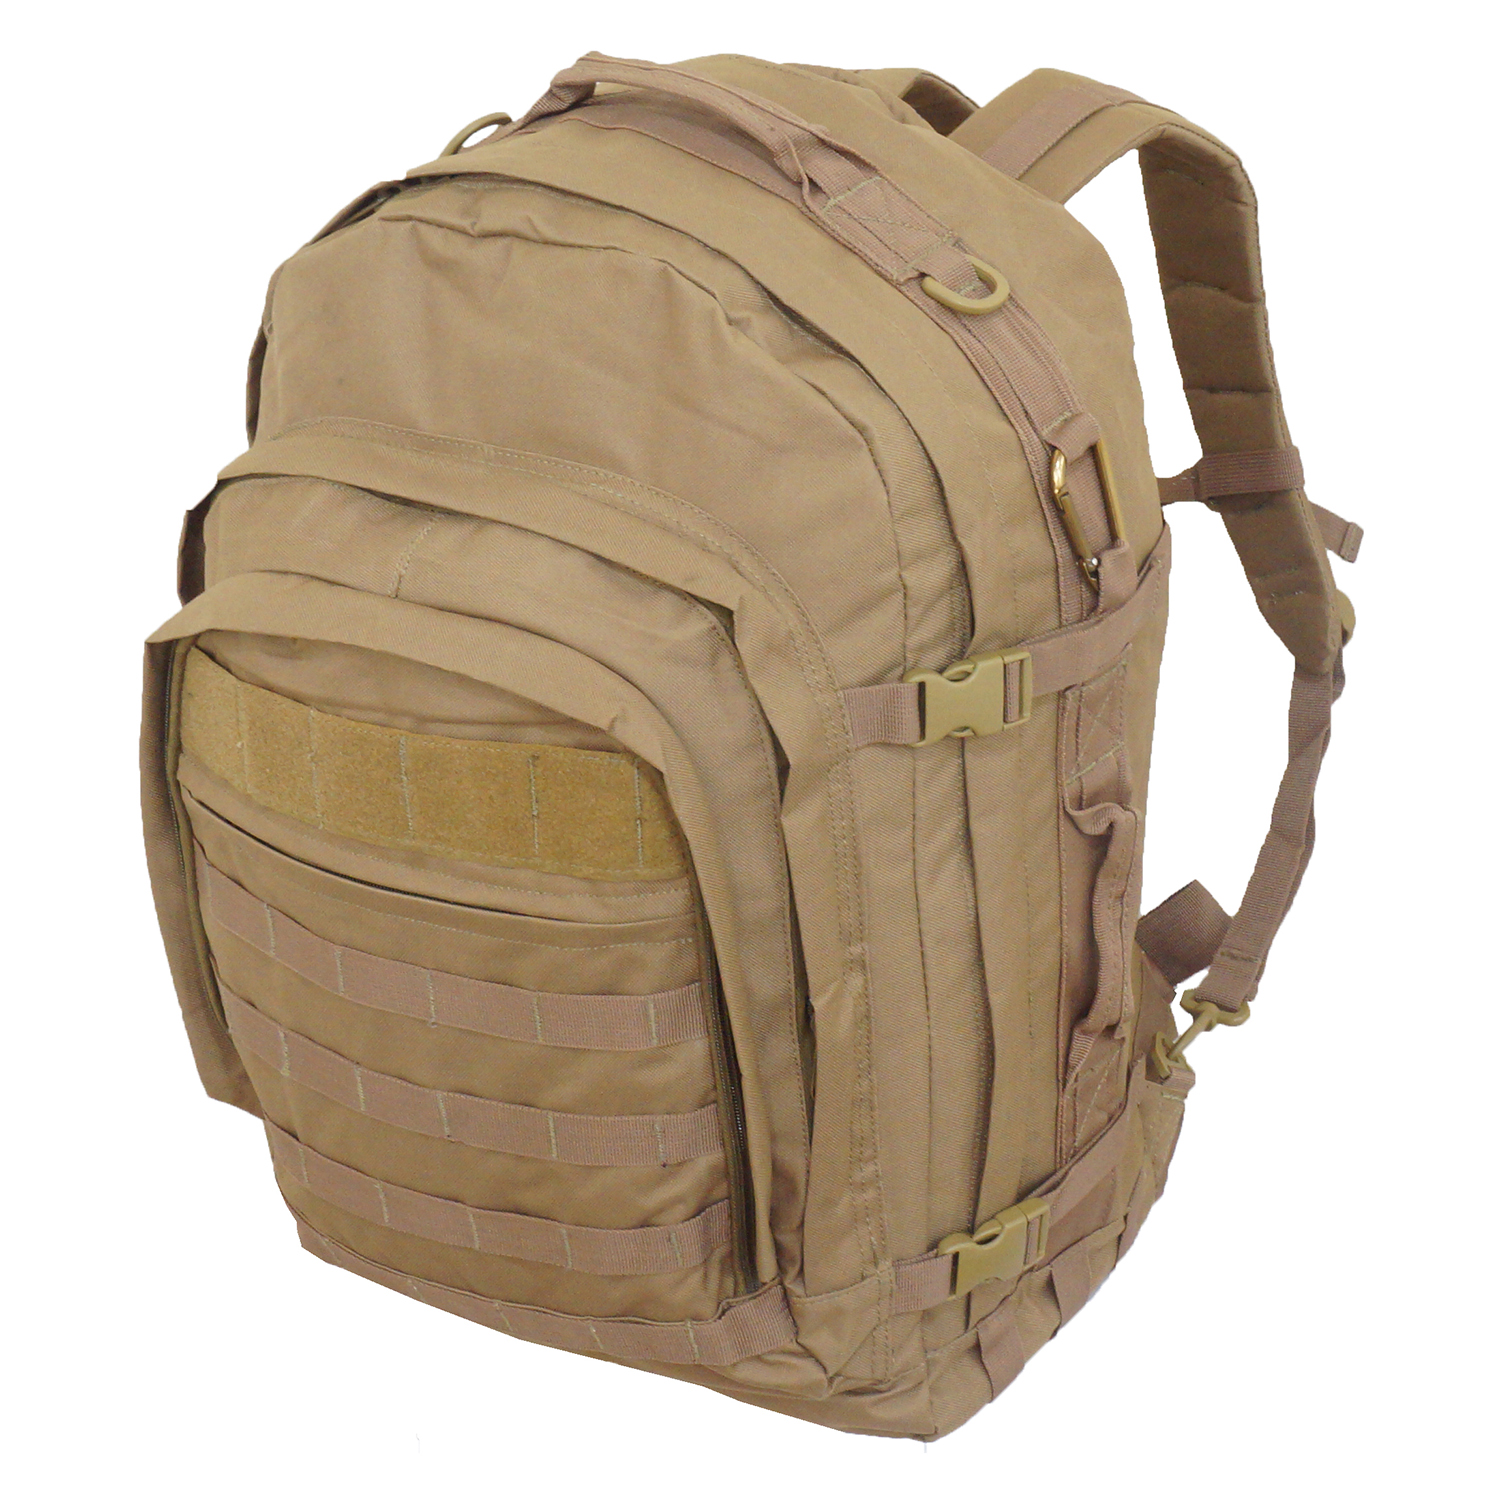 Every Day Carry 3-Day Tactical MOLLE Bug Out Bag Day ...